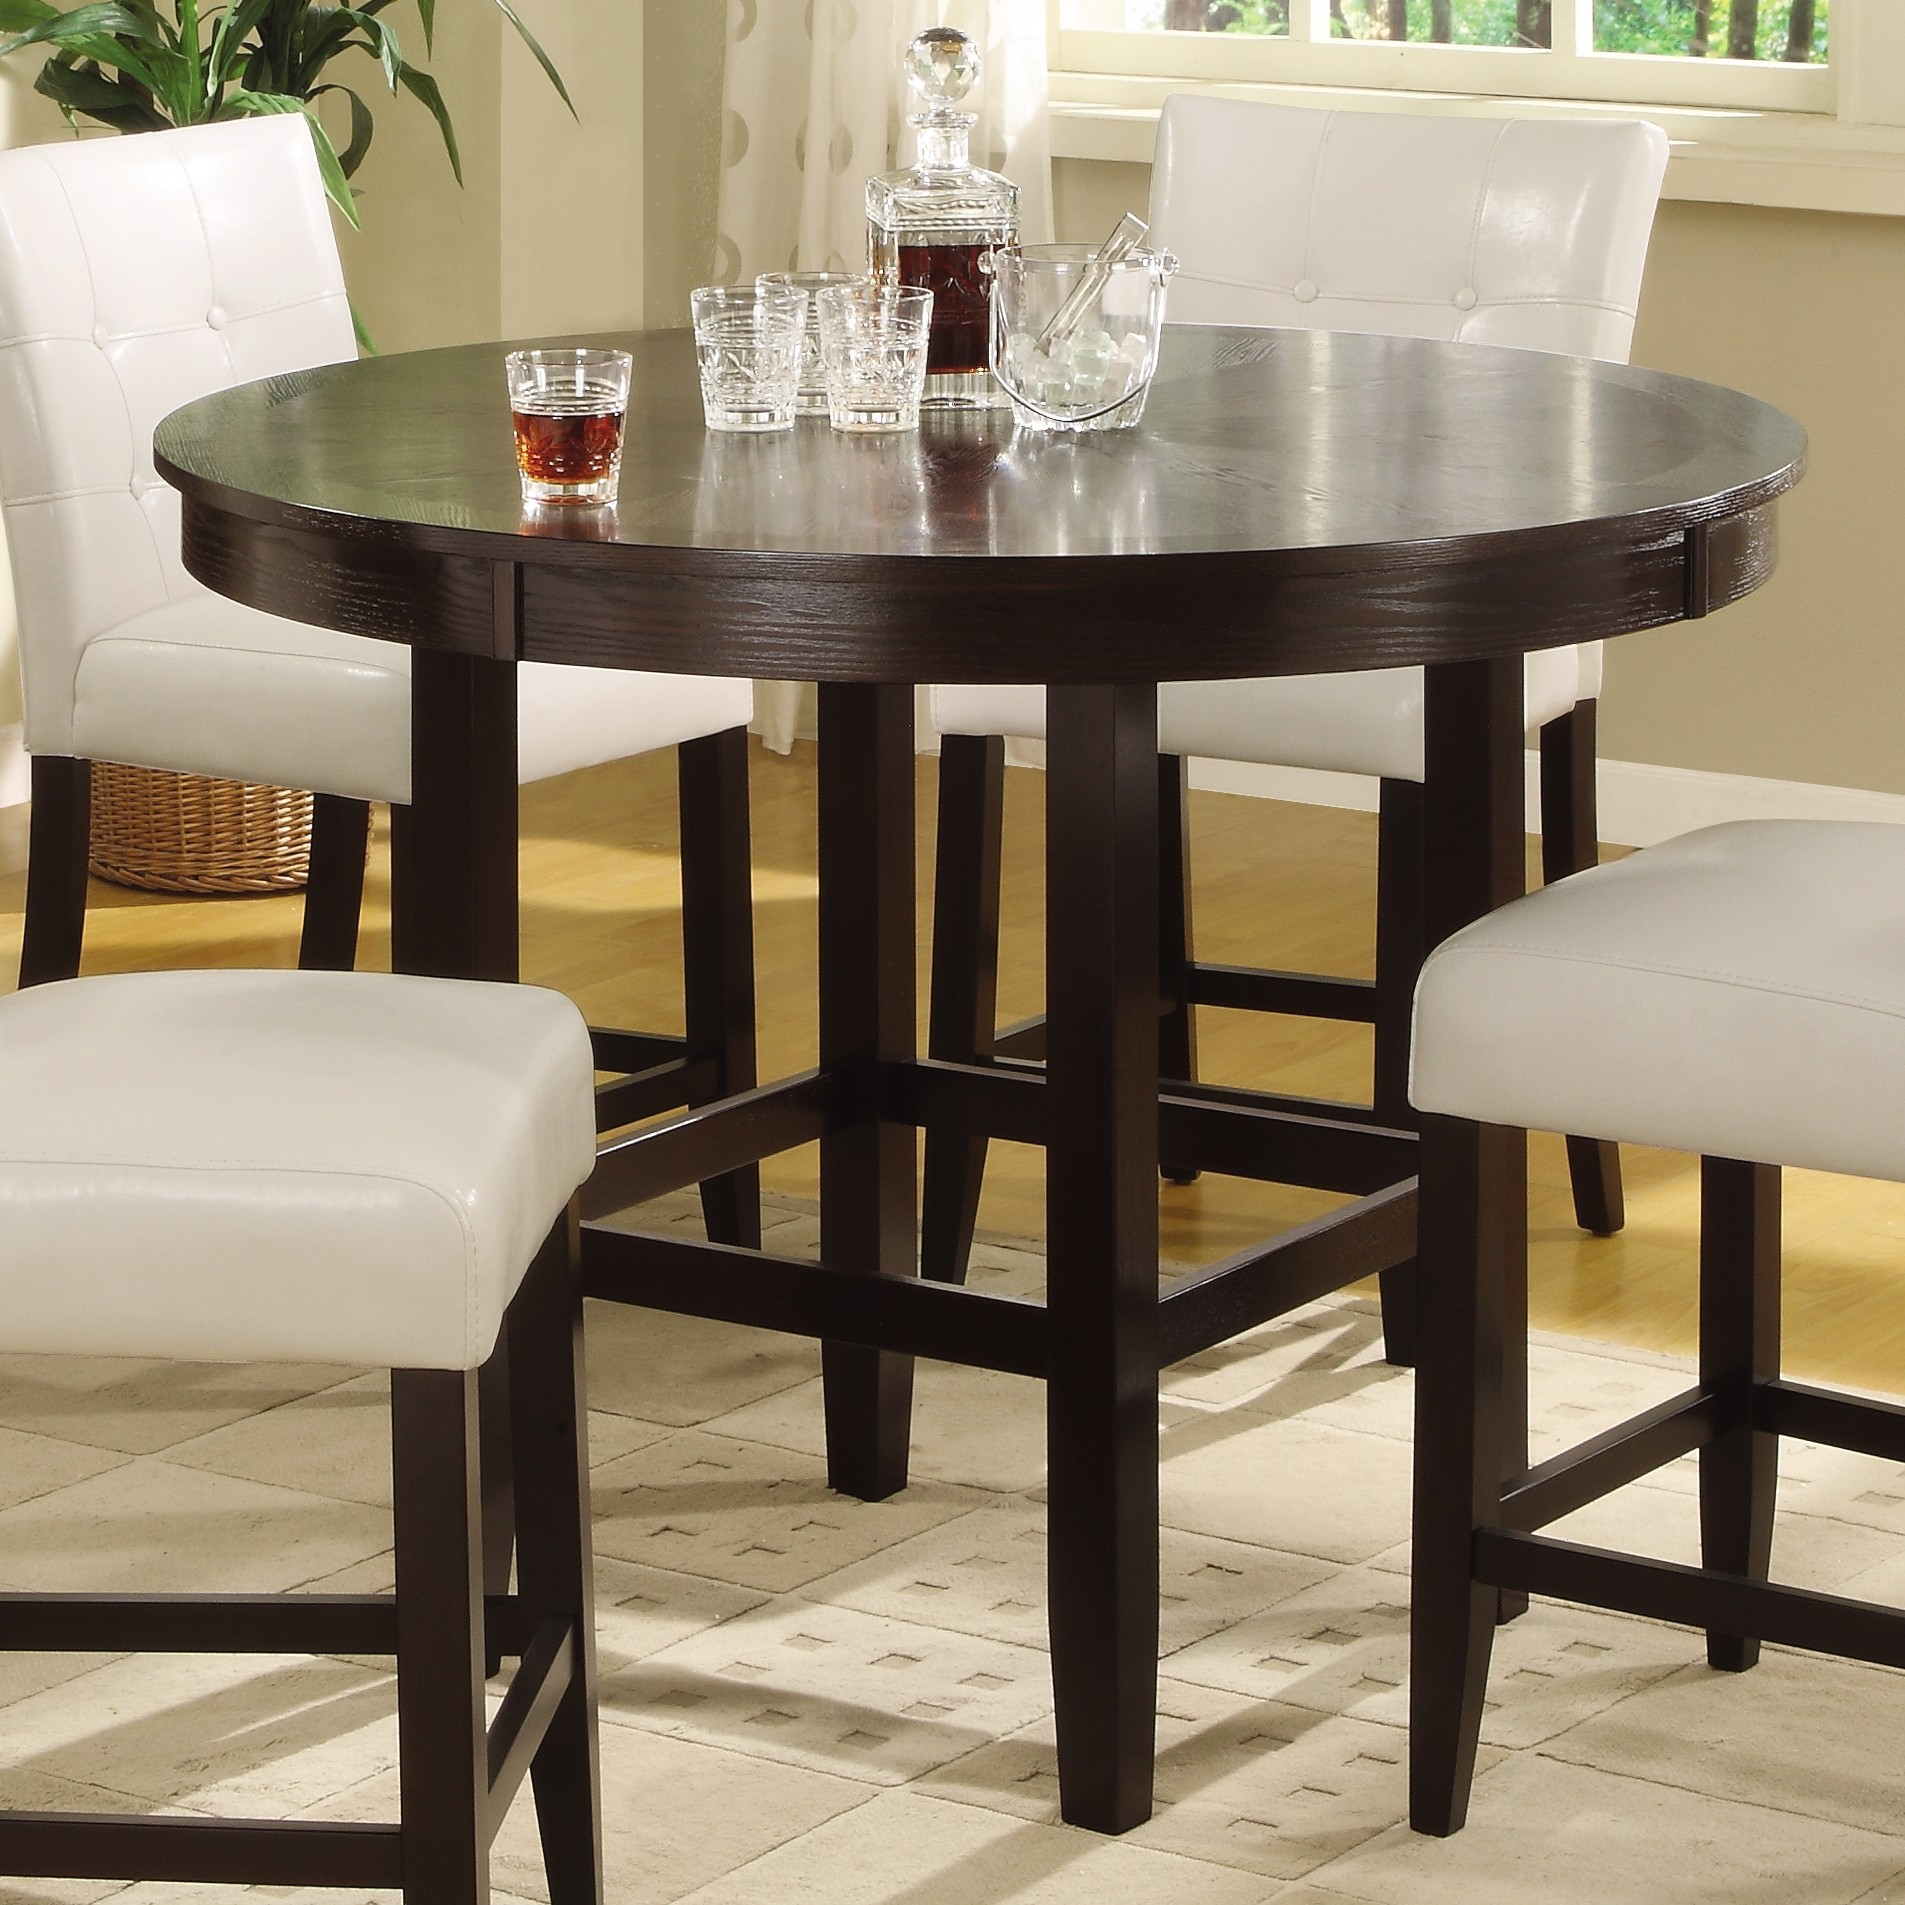 kitchen tables more high kitchen tables round glass dining room table more views